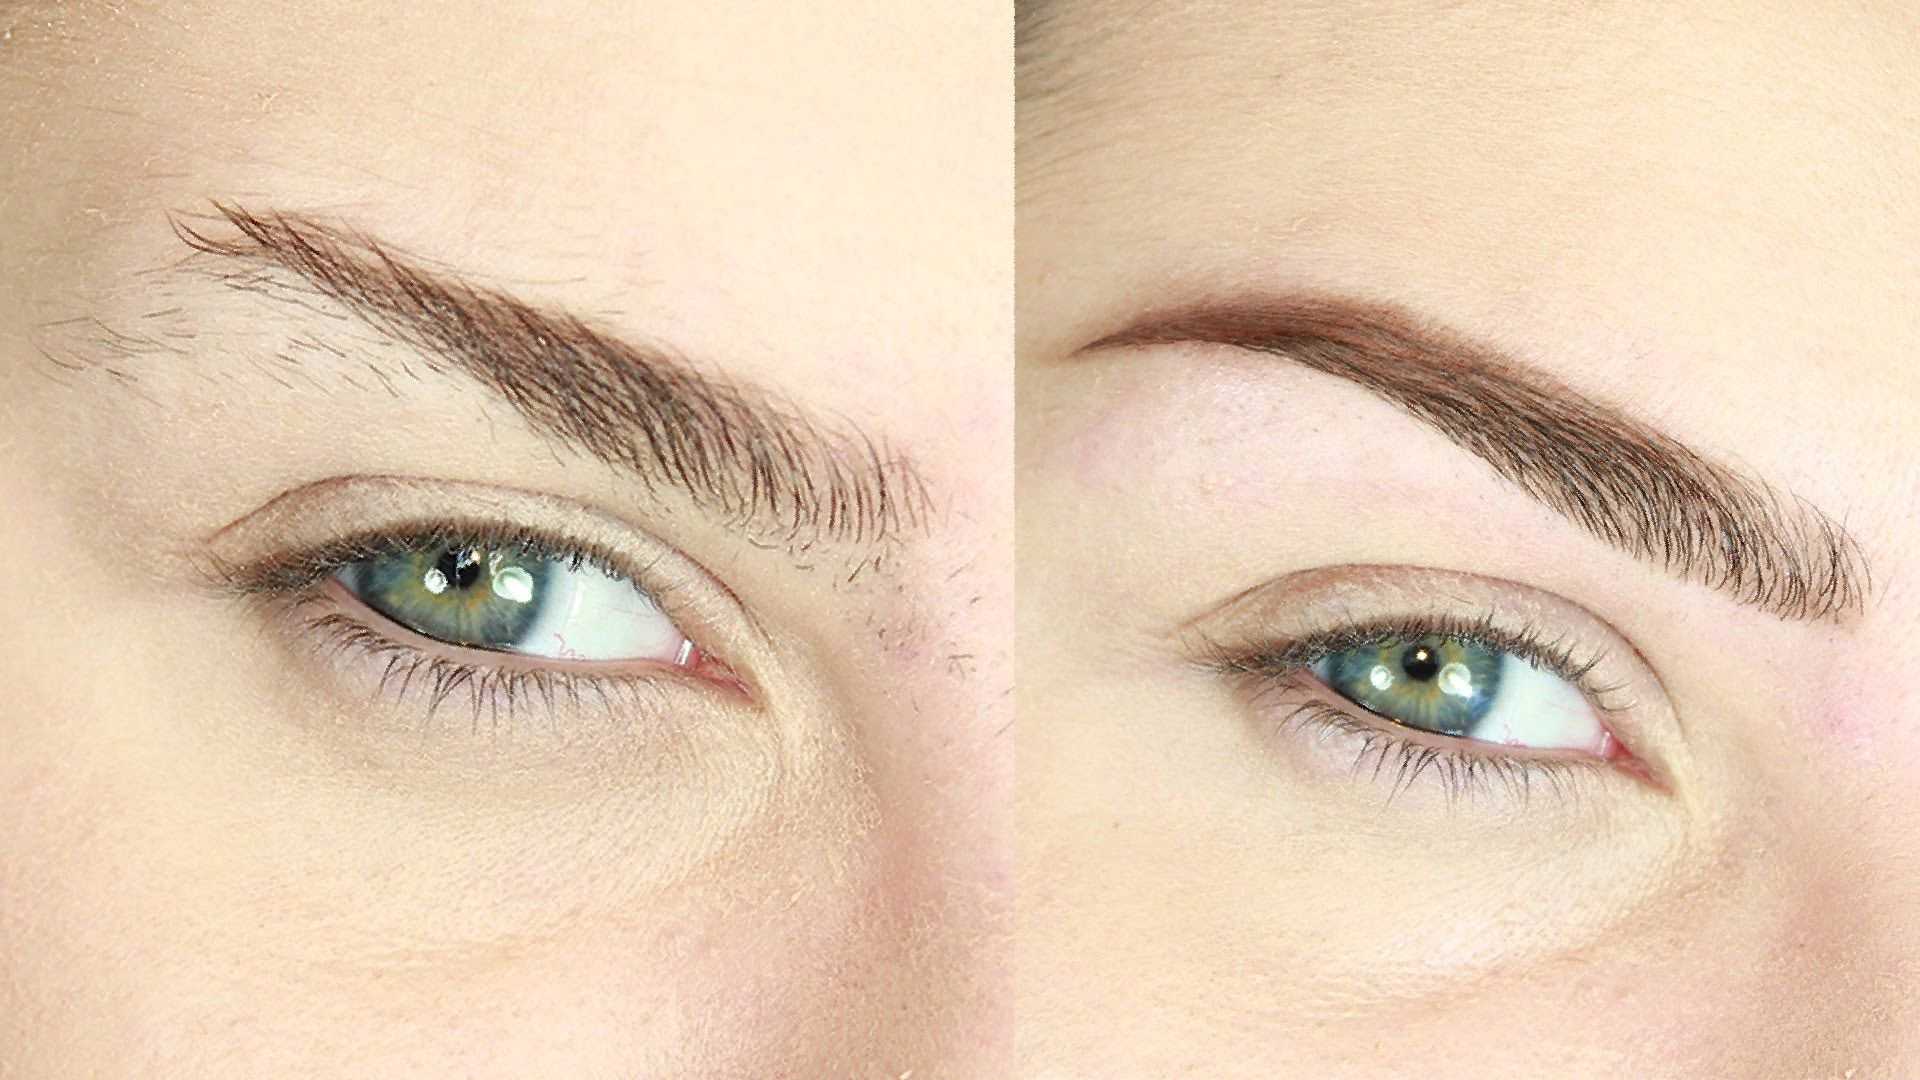 How To Shape Eyebrows At Home With Tweezers Simple Quick Hack